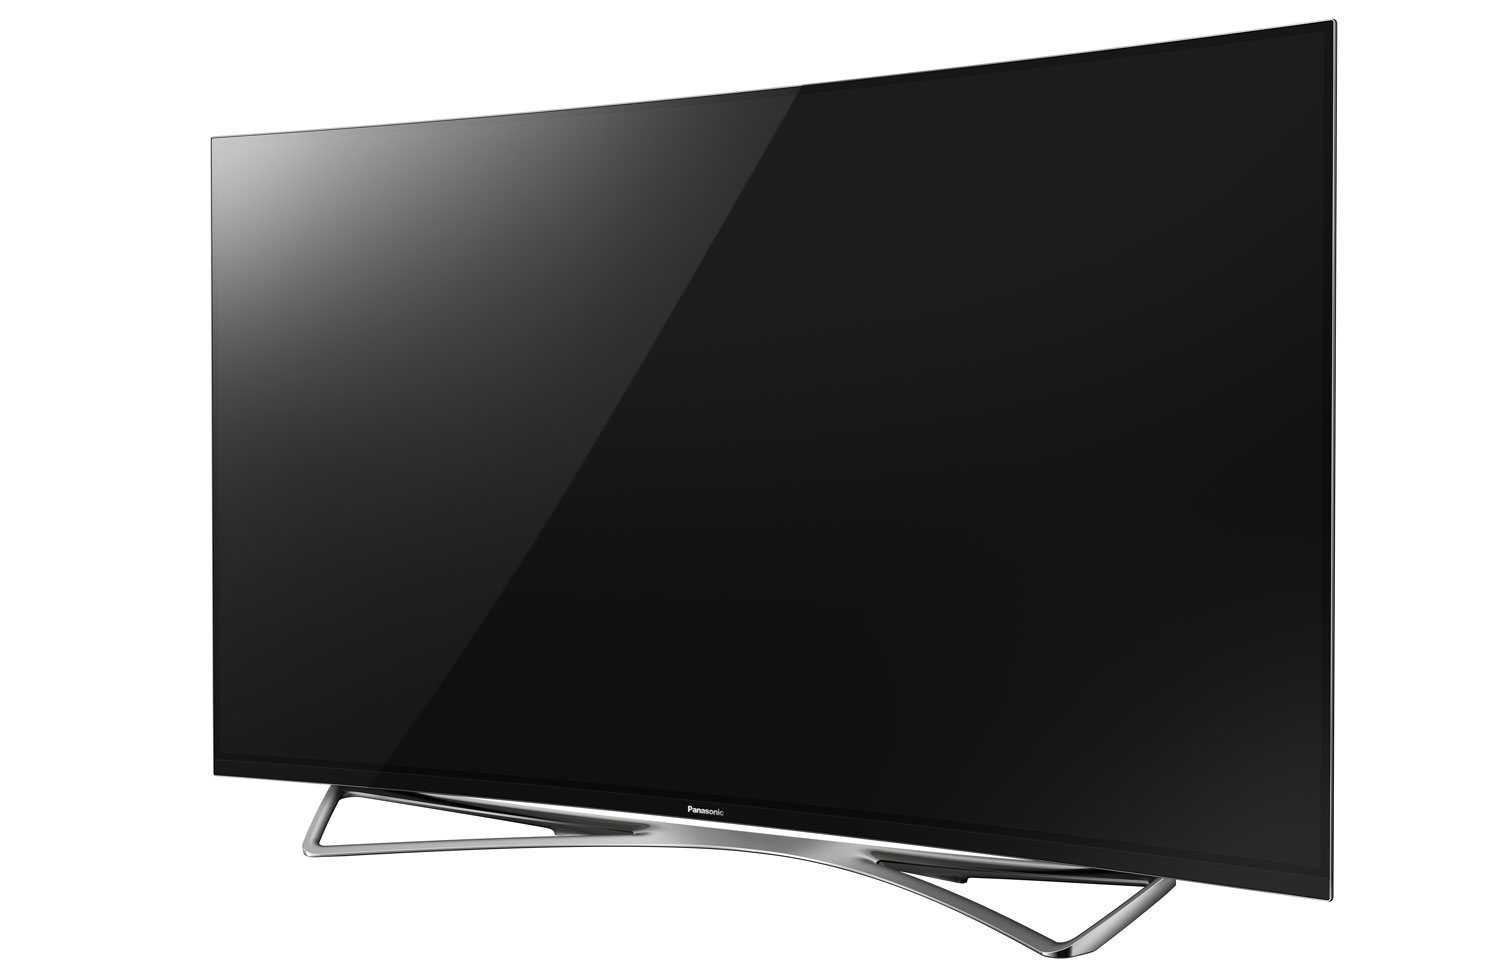 panasonic launches 65 oled tv with 4k hdr flatpanelshd. Black Bedroom Furniture Sets. Home Design Ideas